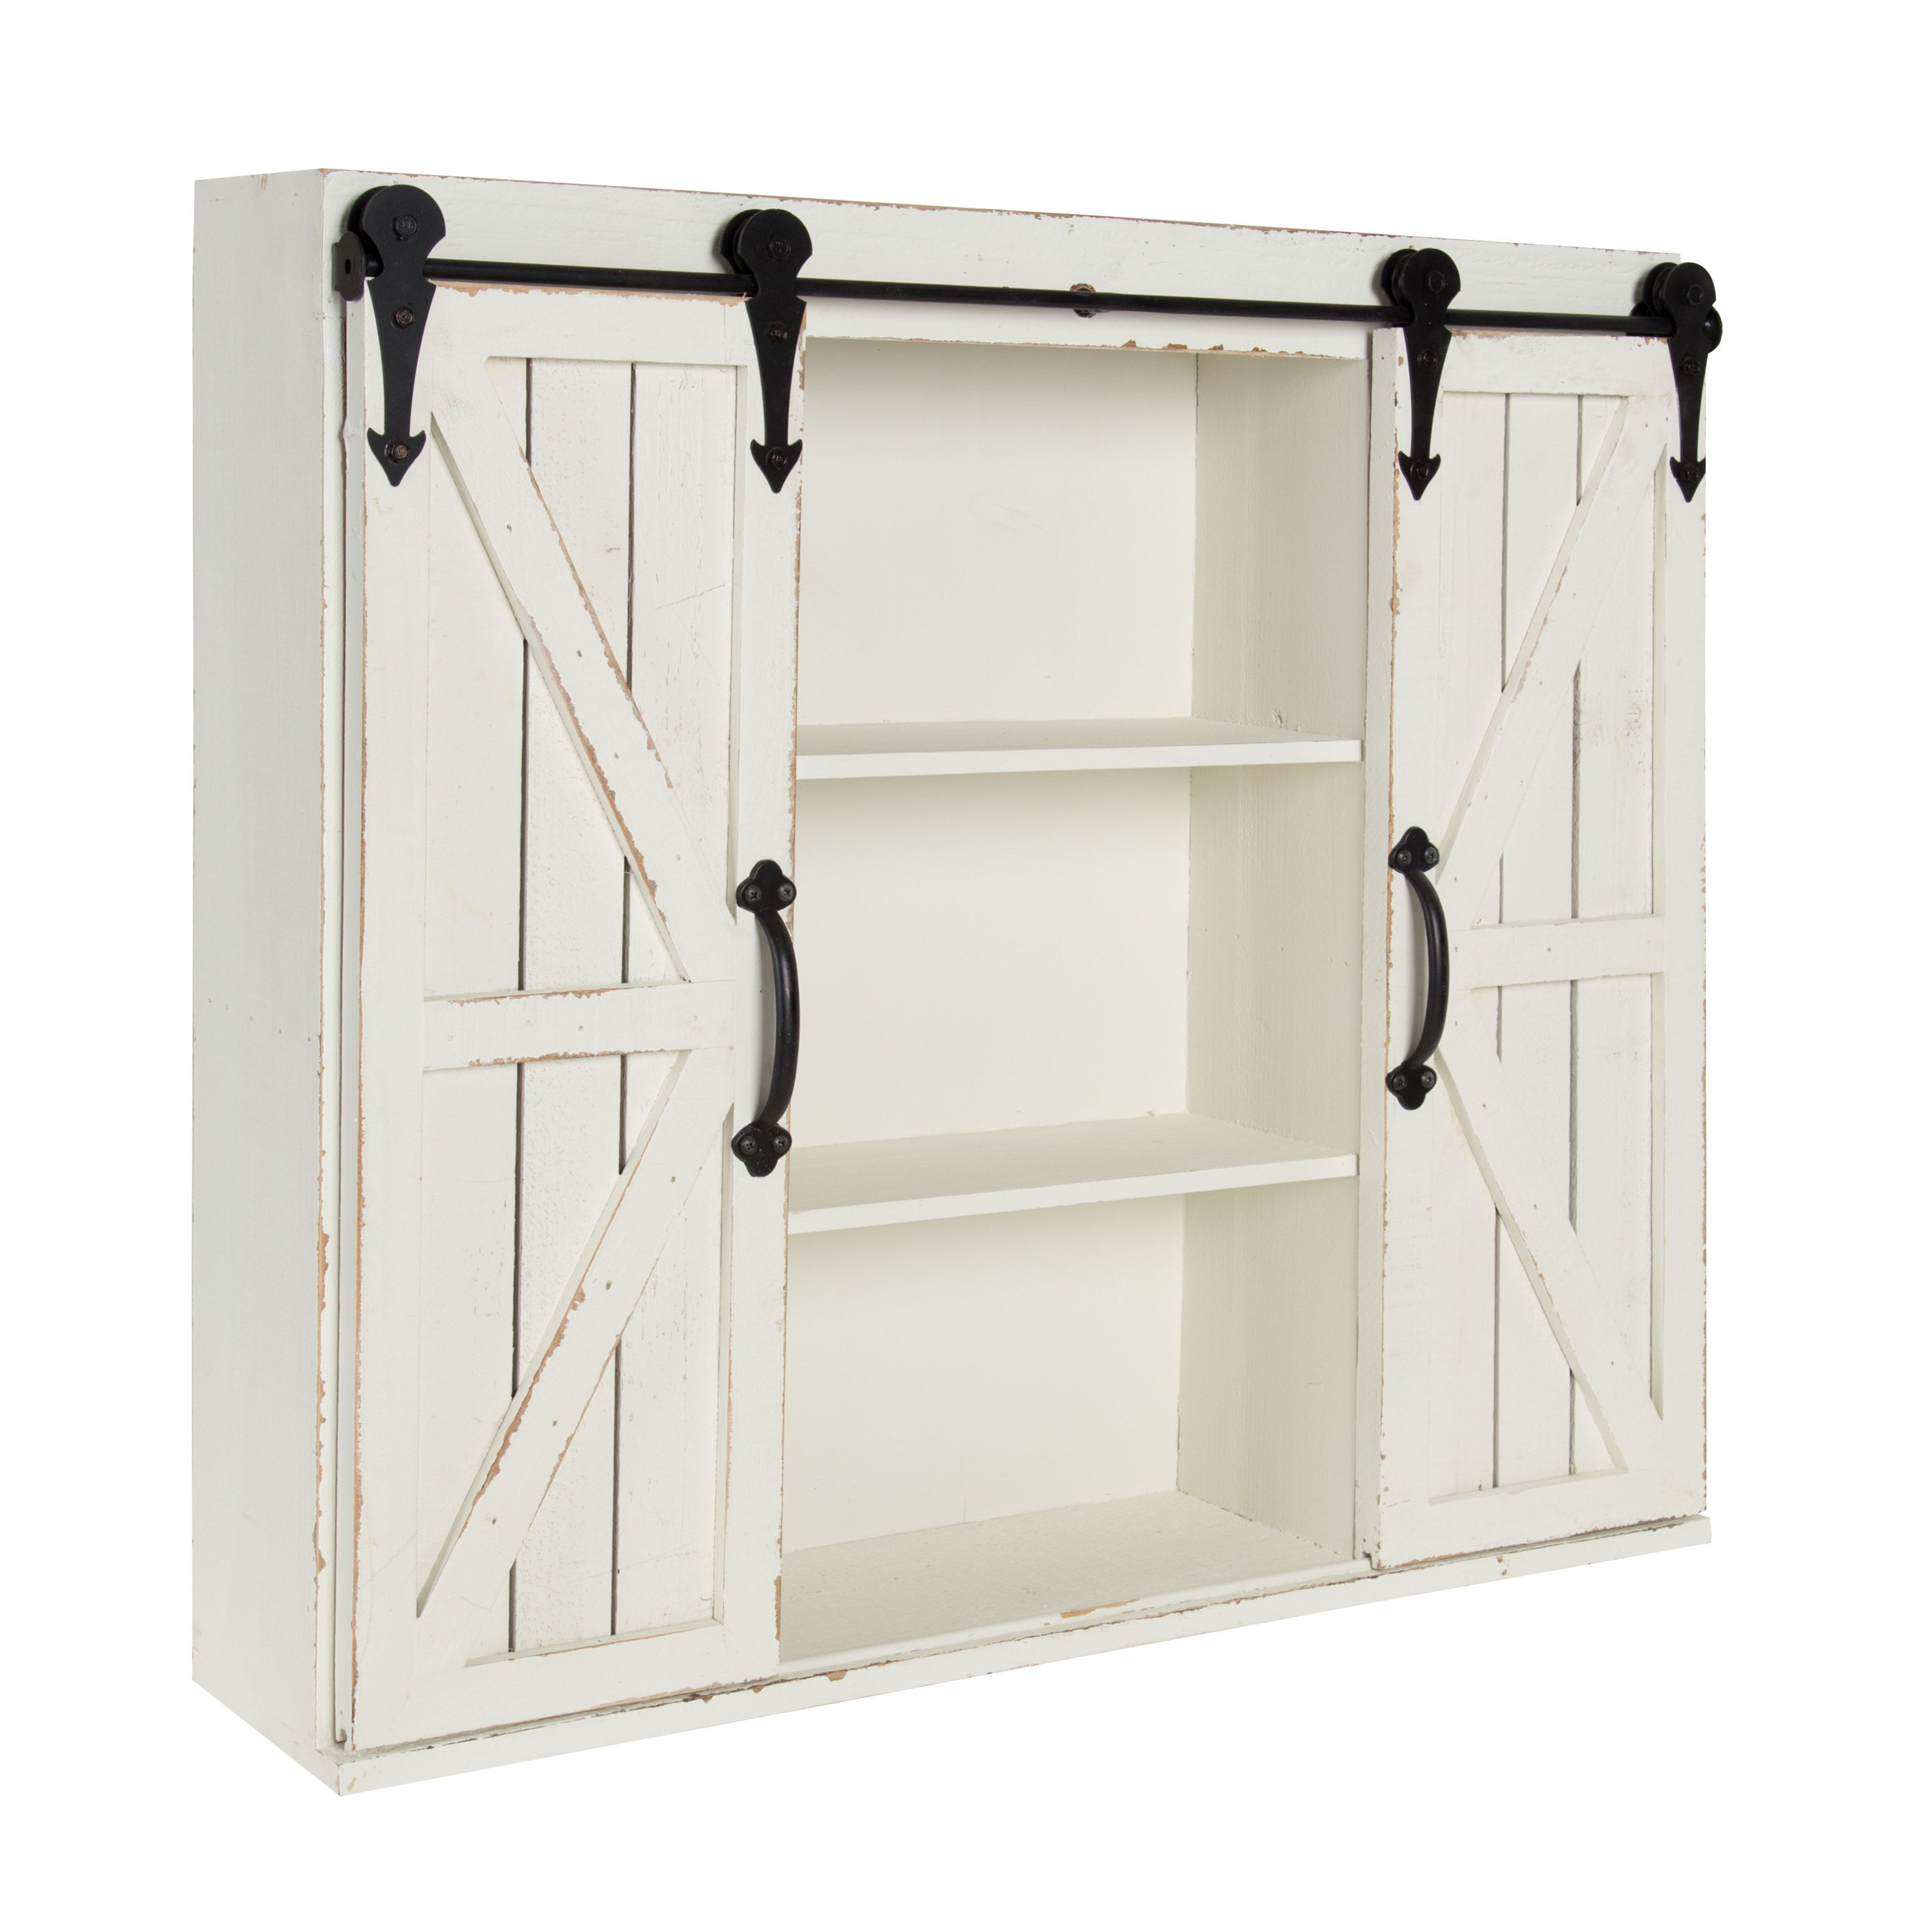 Kate and Laurel Cates Rustic Wood Wall Storage Cabinet with